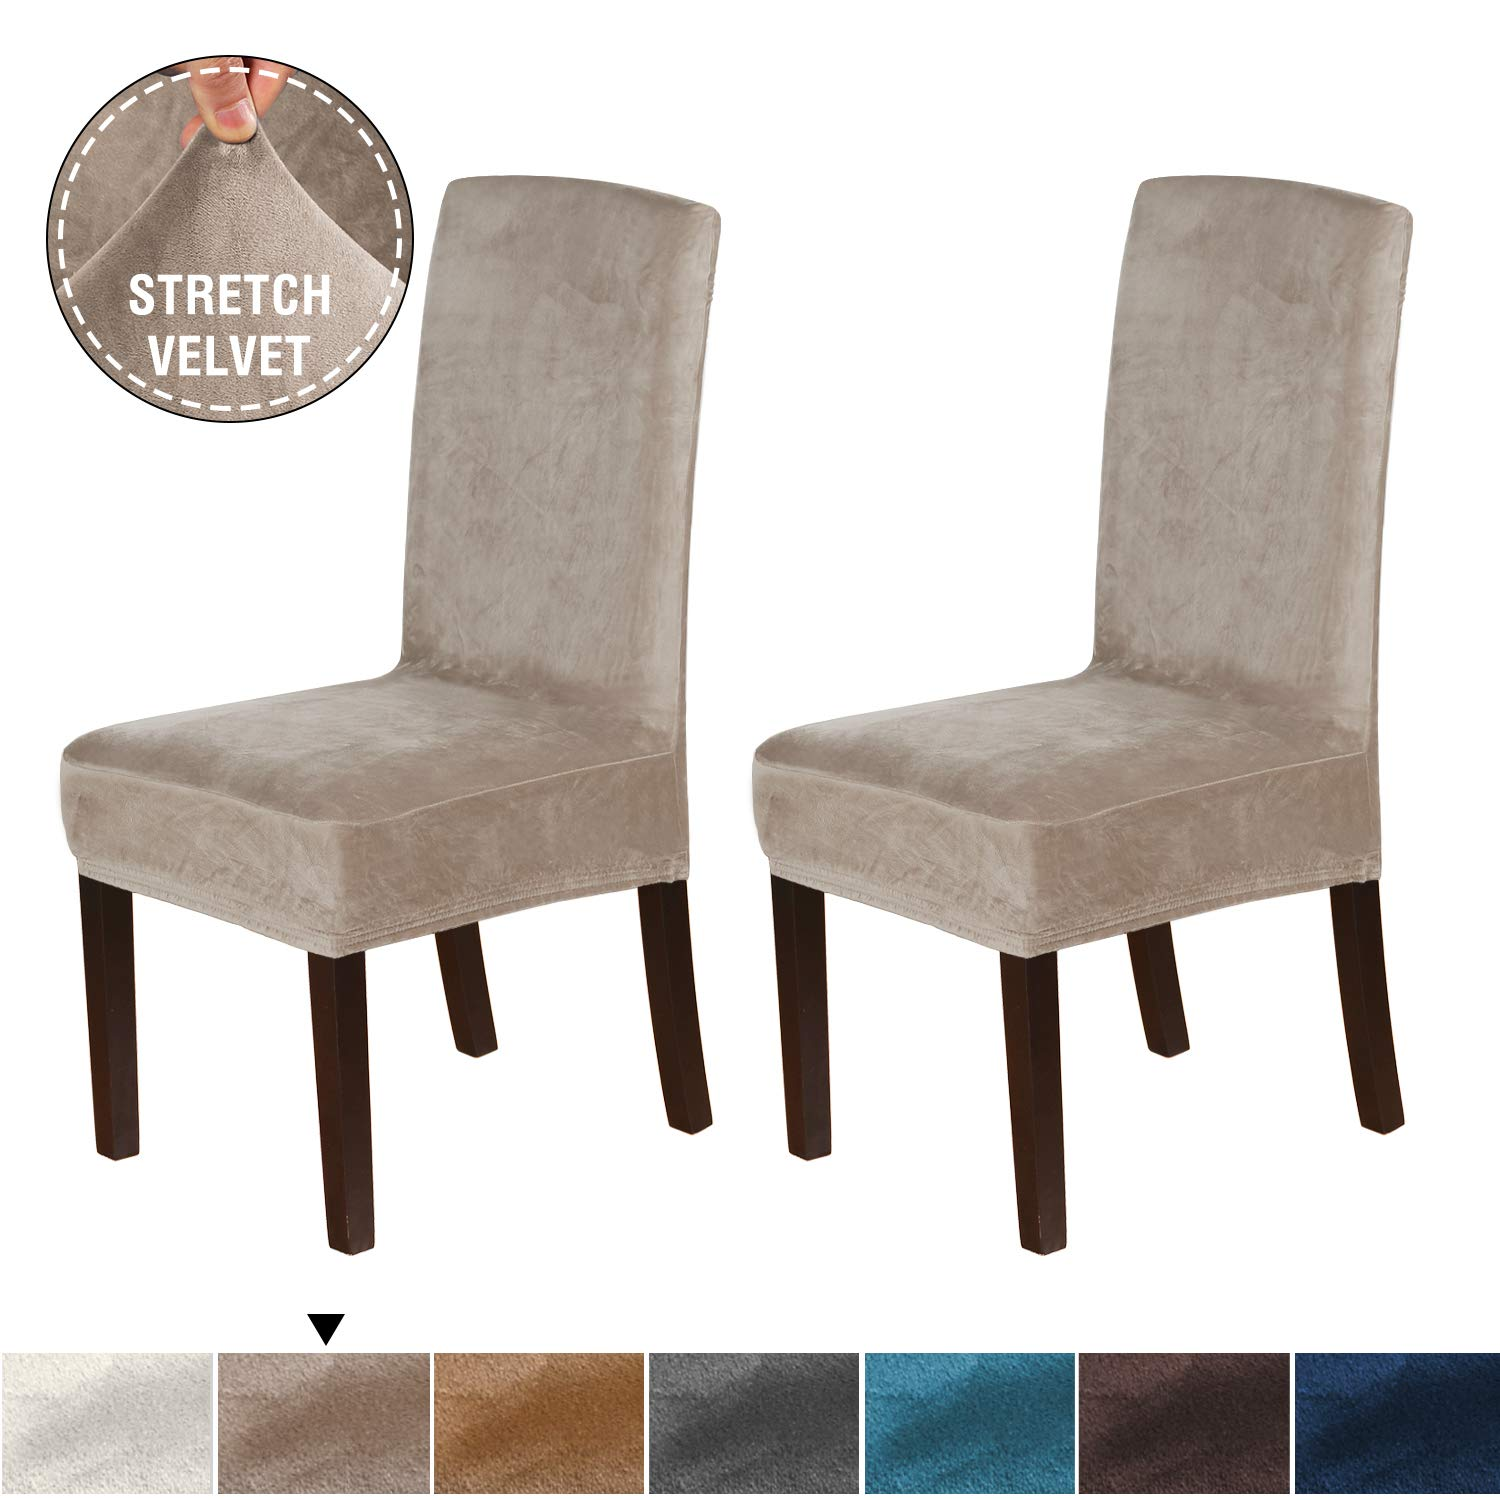 H.VERSAILTEX Soft Form Fitting Velvet Dining Room Chair Covers Feature Real Velvet Stretch Fabric, Banquet Chair Seat Protector Slipcover for Home Party Hotel Wedding Ceremony, Pack of 2, Taupe